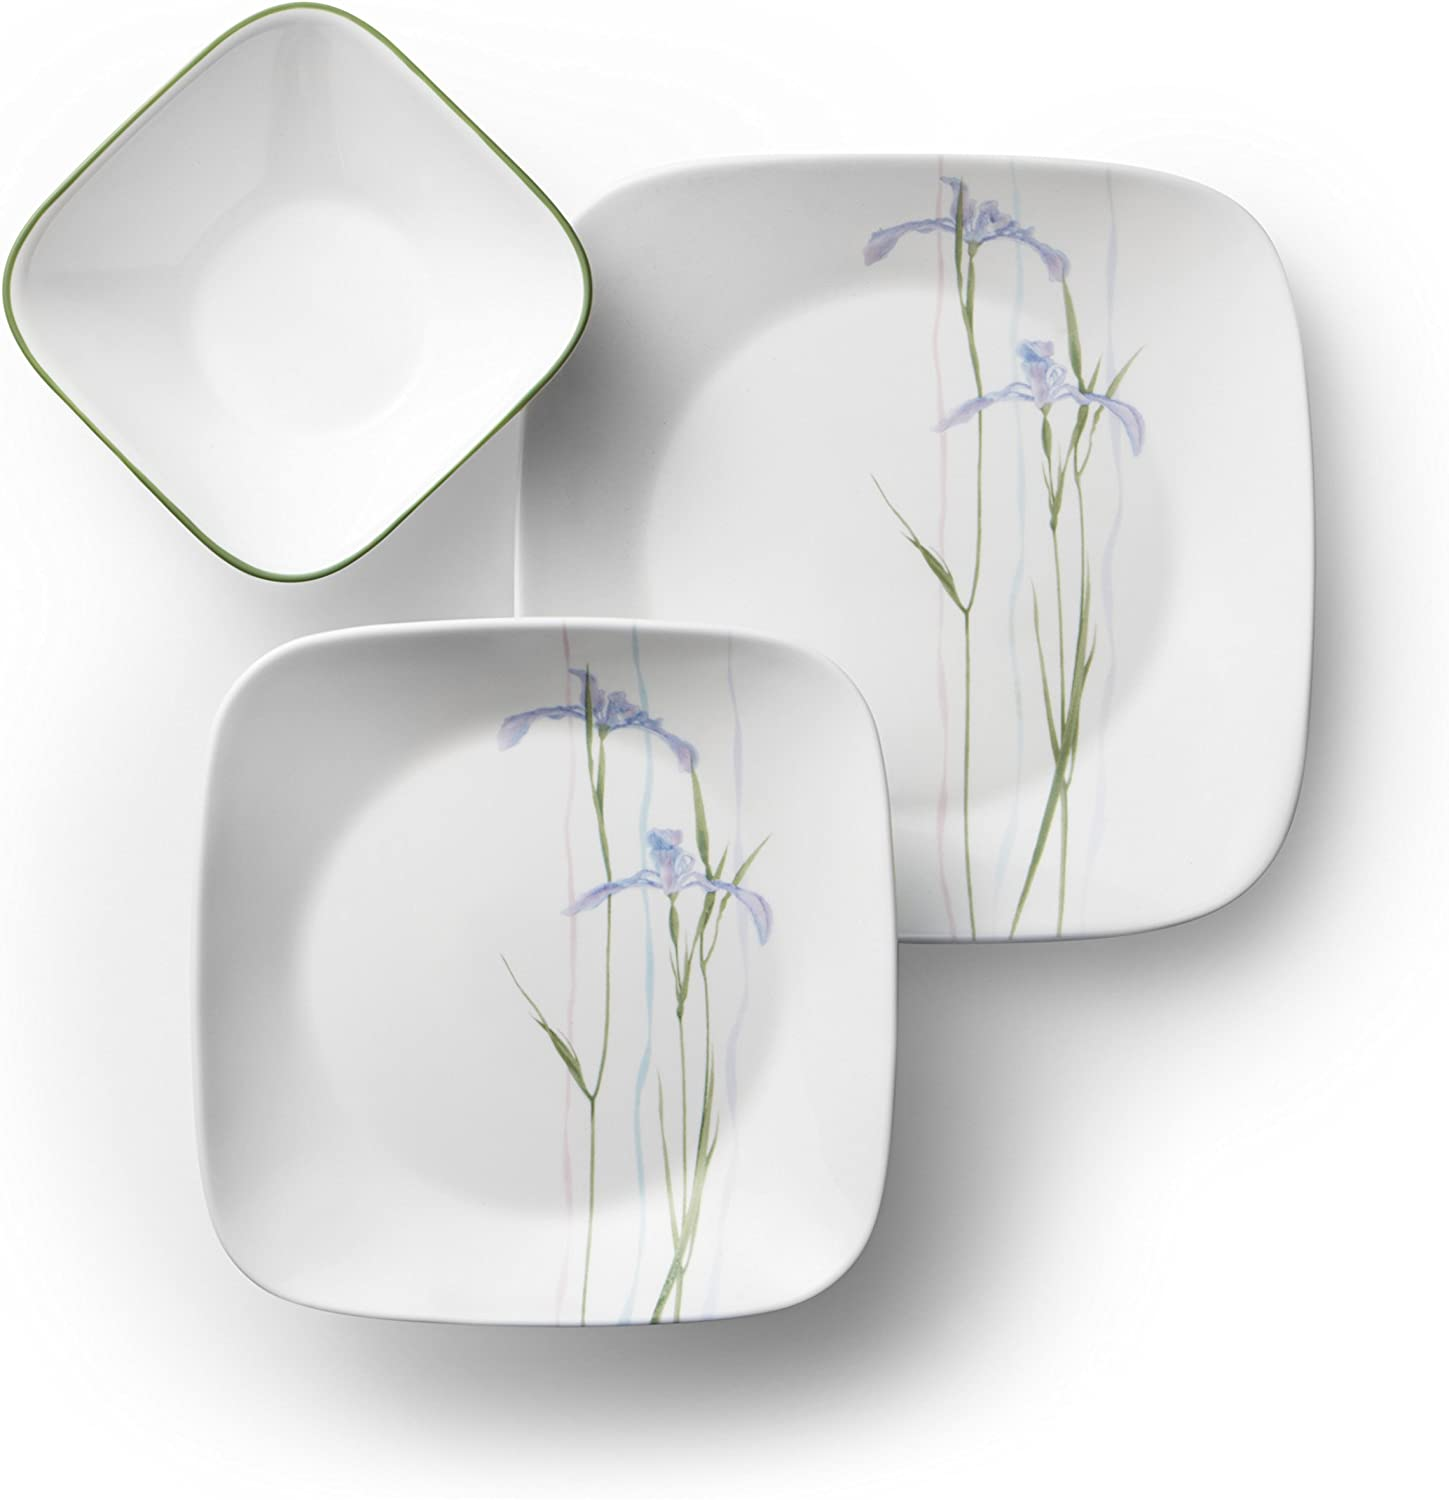 Corelle Service for 6, Chip Resistant, Timber Shadows Dinnerware Set, 18-Piece Shadow Iris